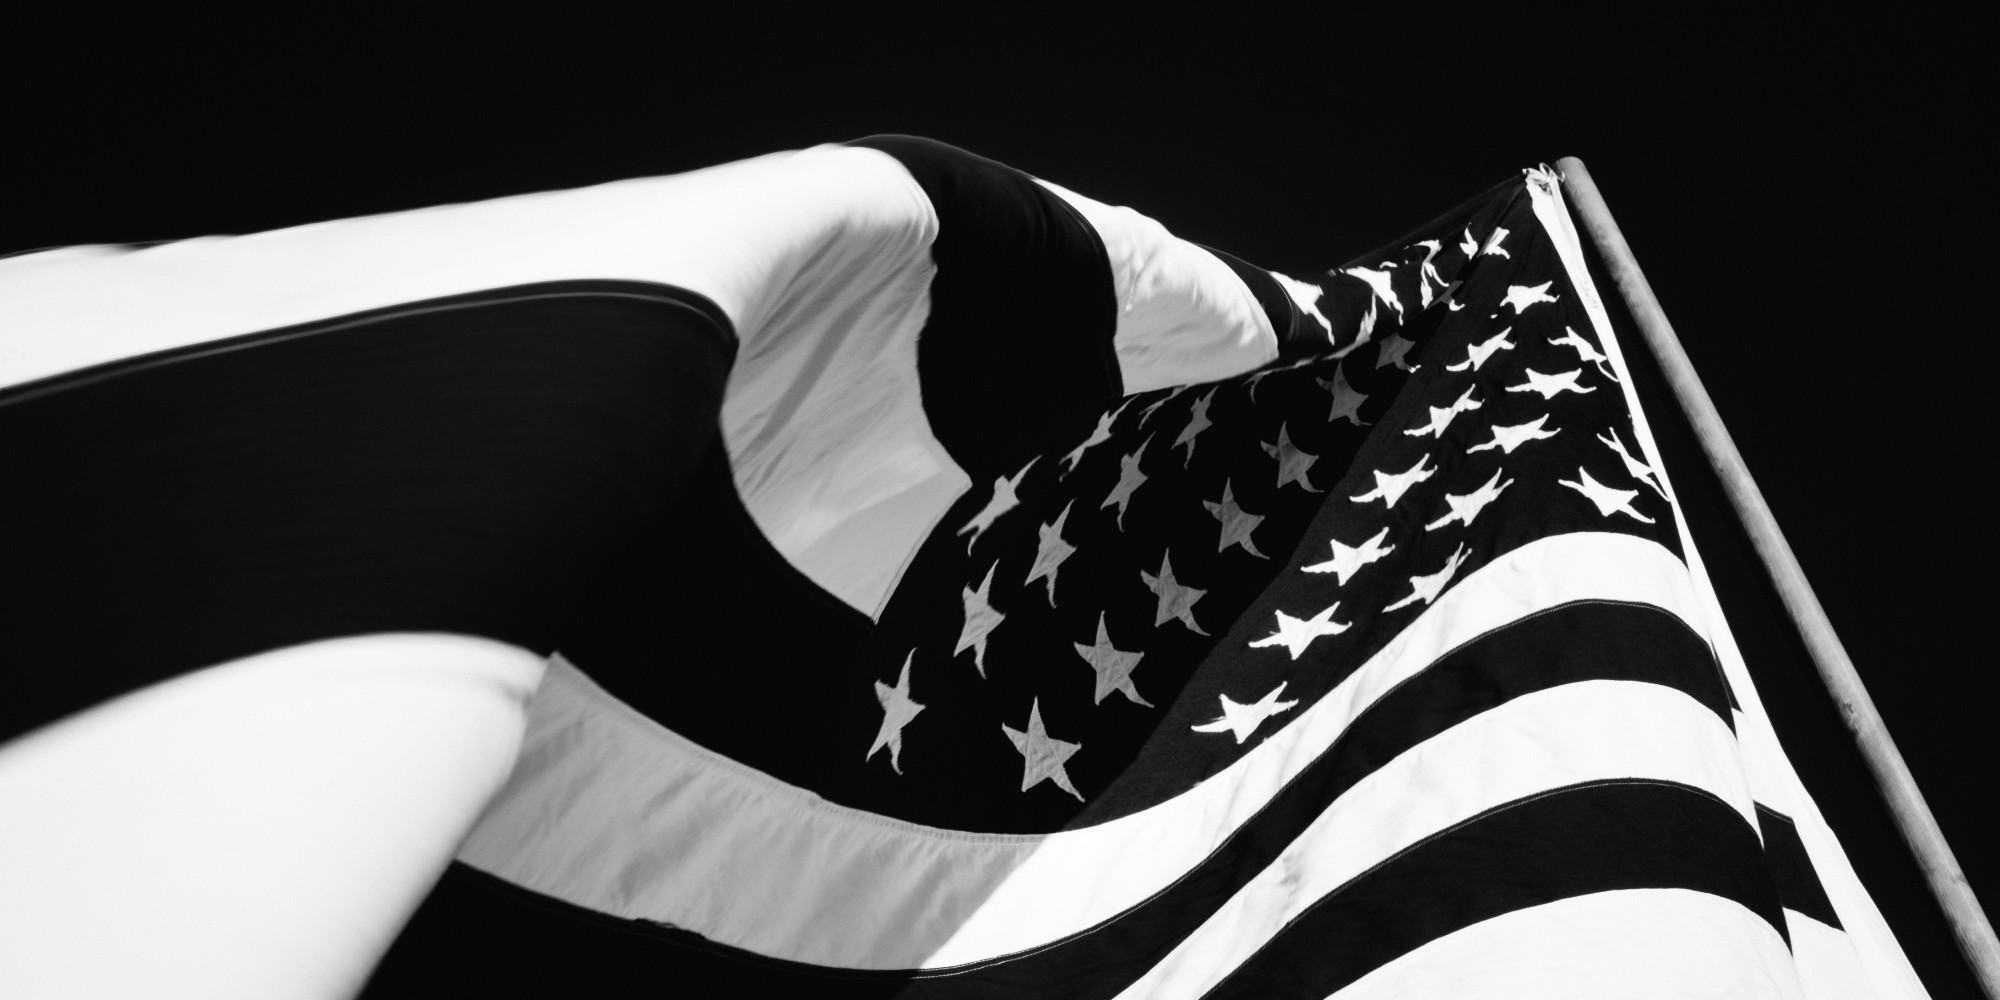 flag american america stars stripes waving military whit photograph contrast breeze closeup abstract very huffpost suicides study